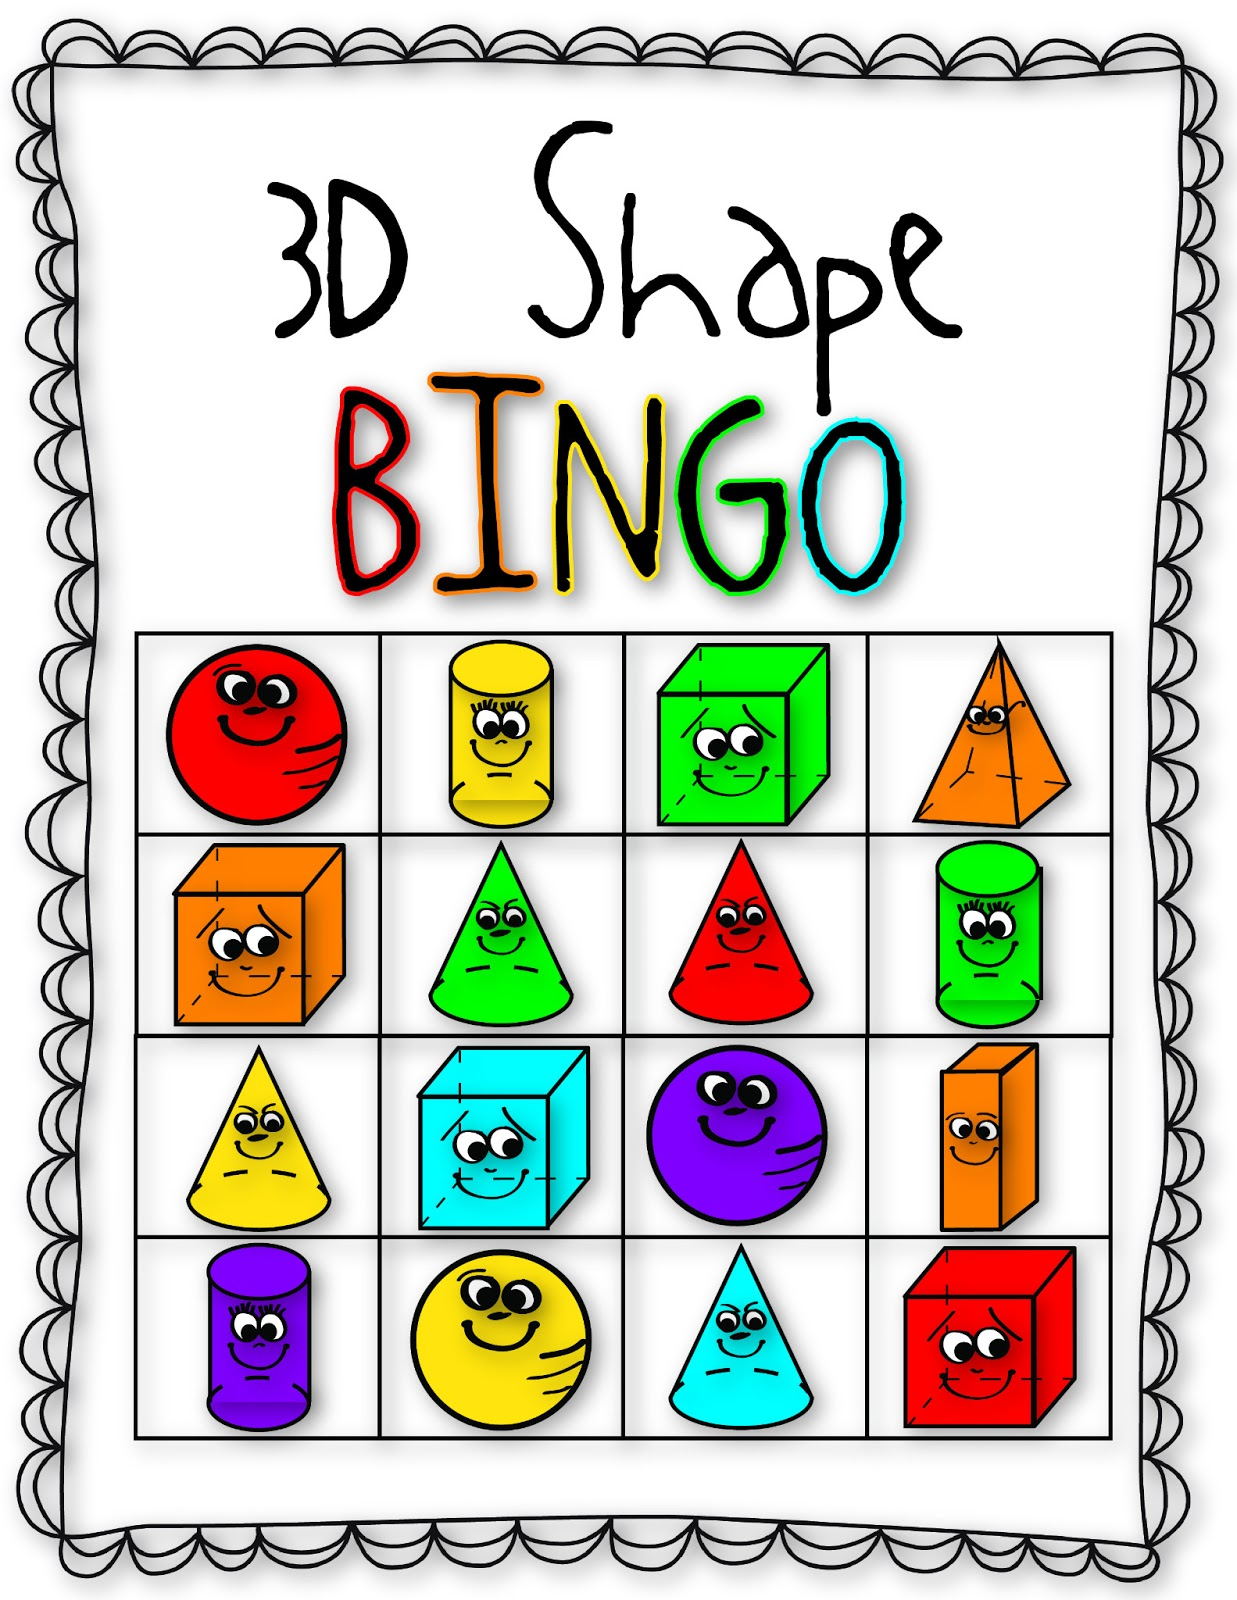 13 Bingo Card Clip Art Free Cliparts That You Can Download To You